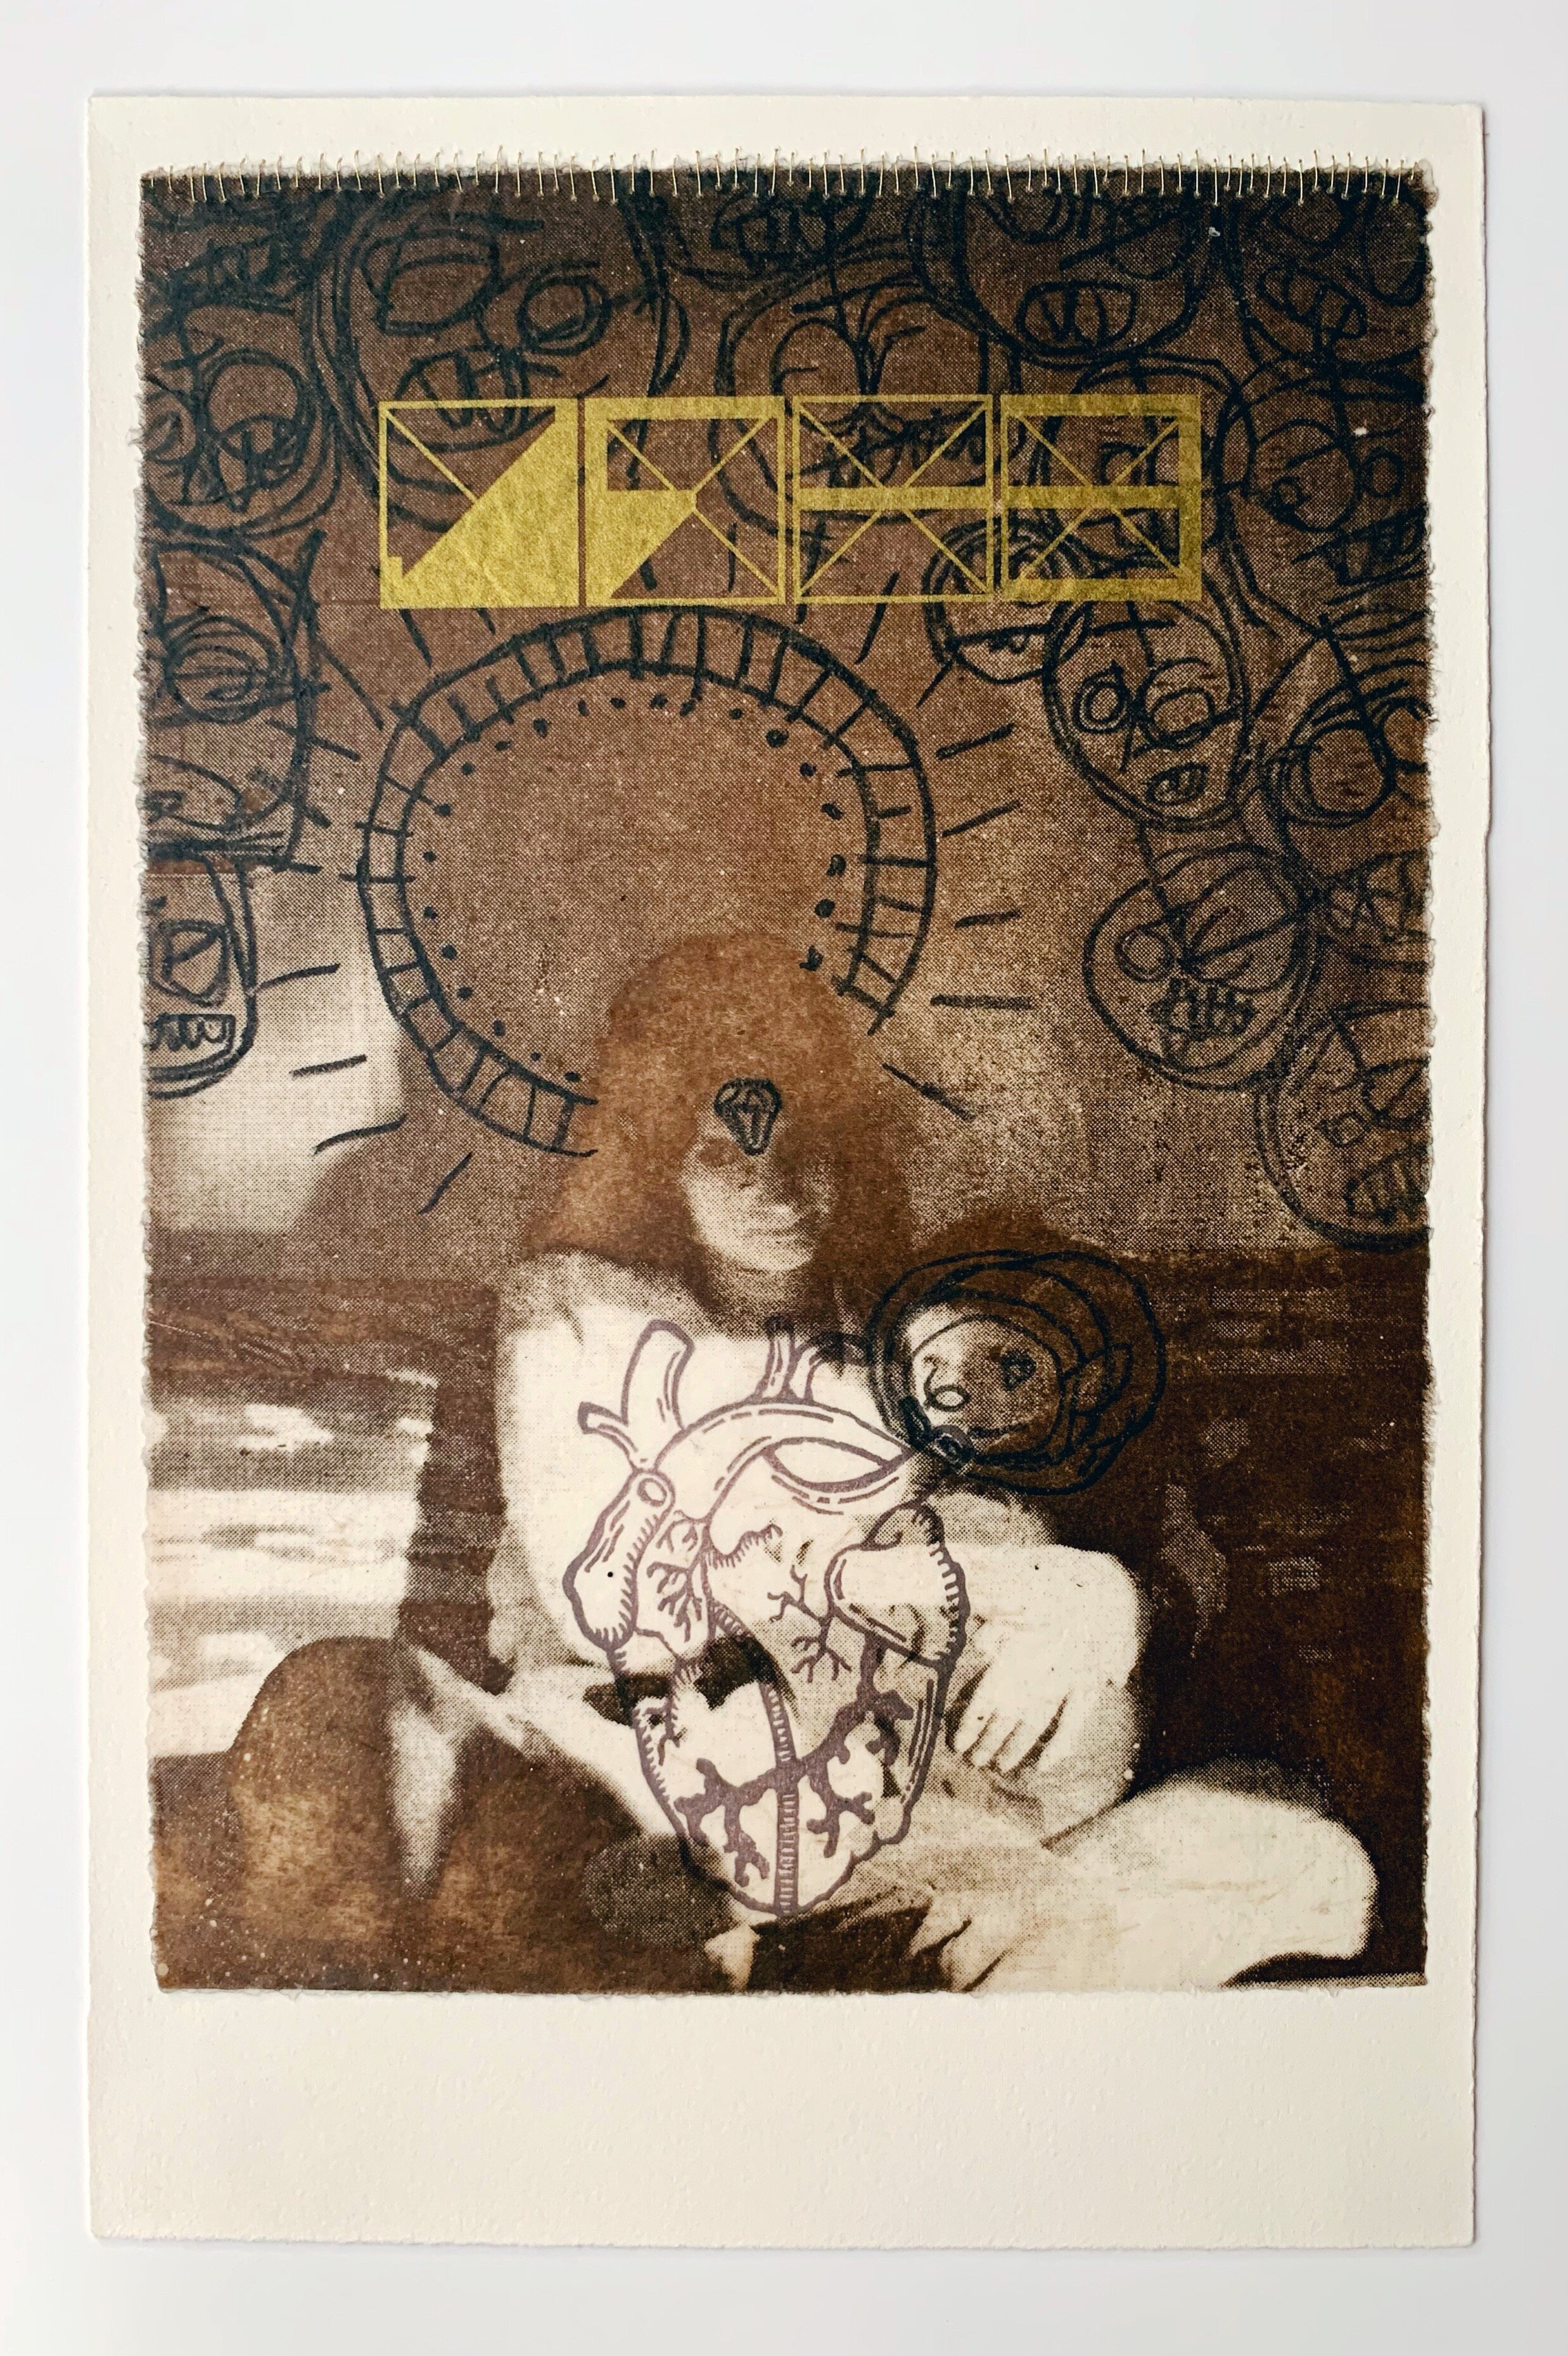 The loss of innocence produces monstros, serigraphy, intaglio, waxed Japanese paper, gold thread, and linocut, 2013